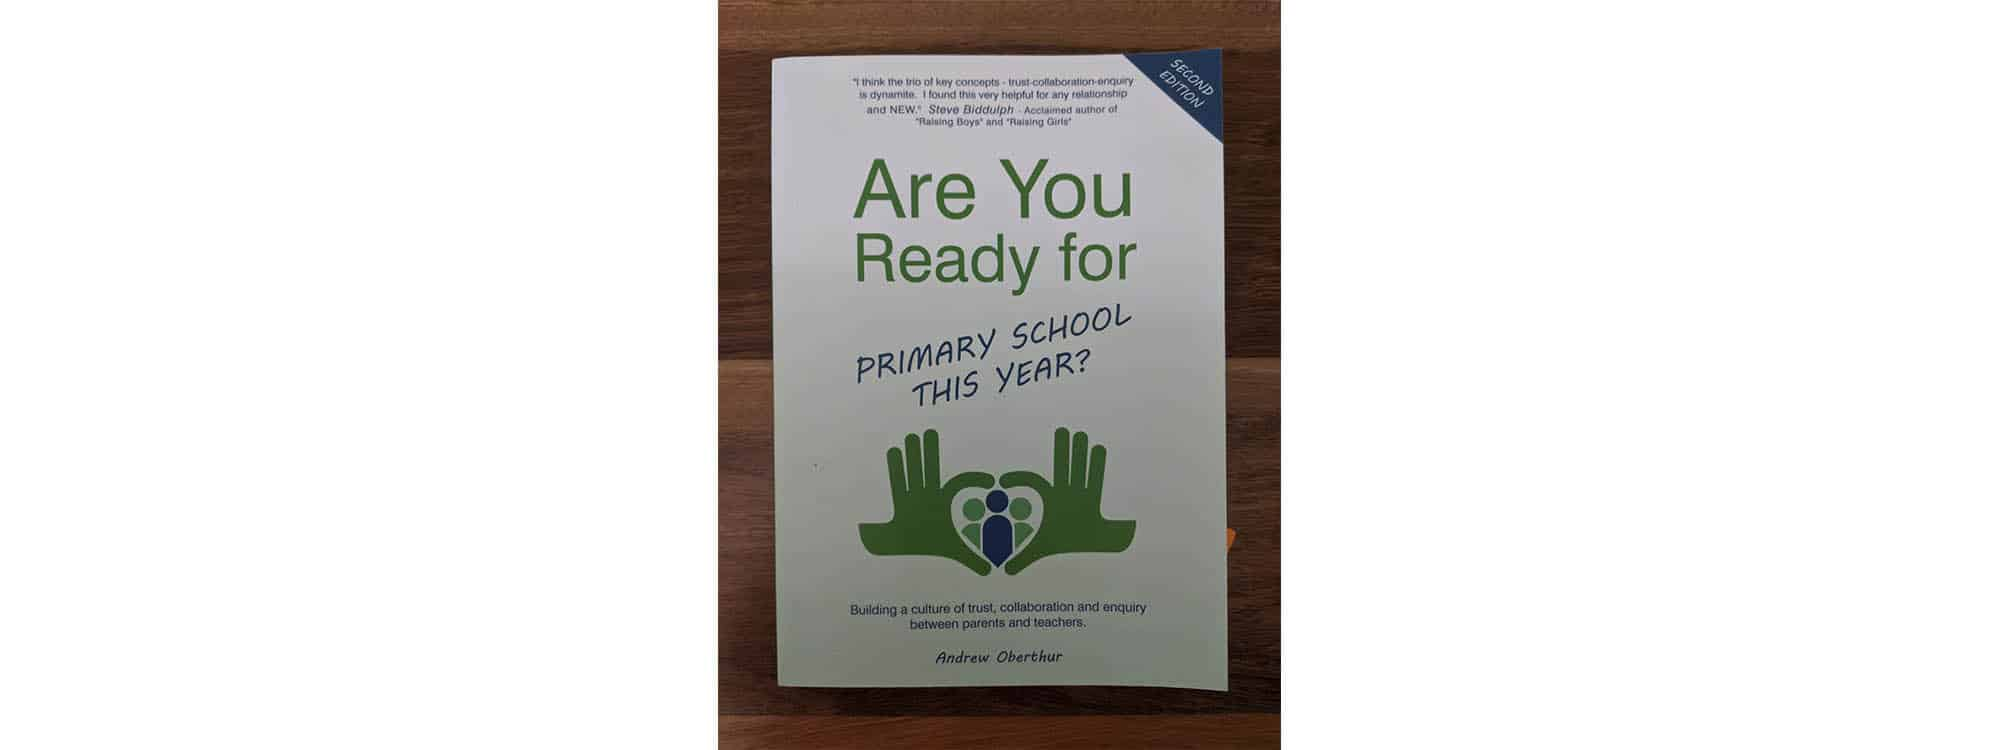 WIN a Copy of Are You Ready for Primary School This Year?